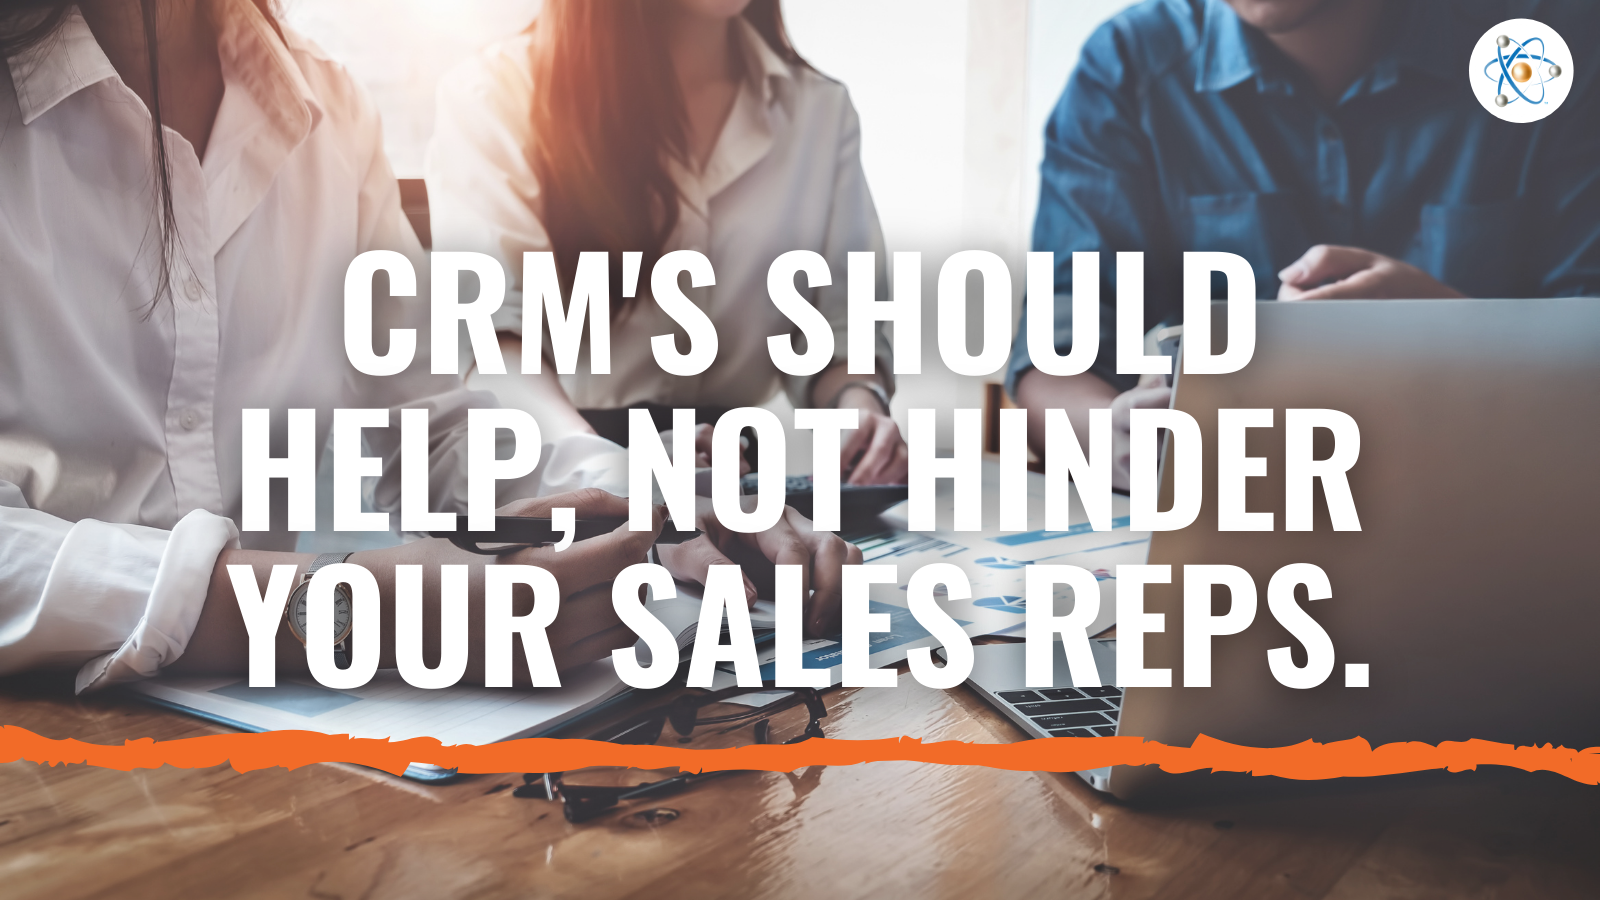 crm help not hinder sales reps atomic revenue